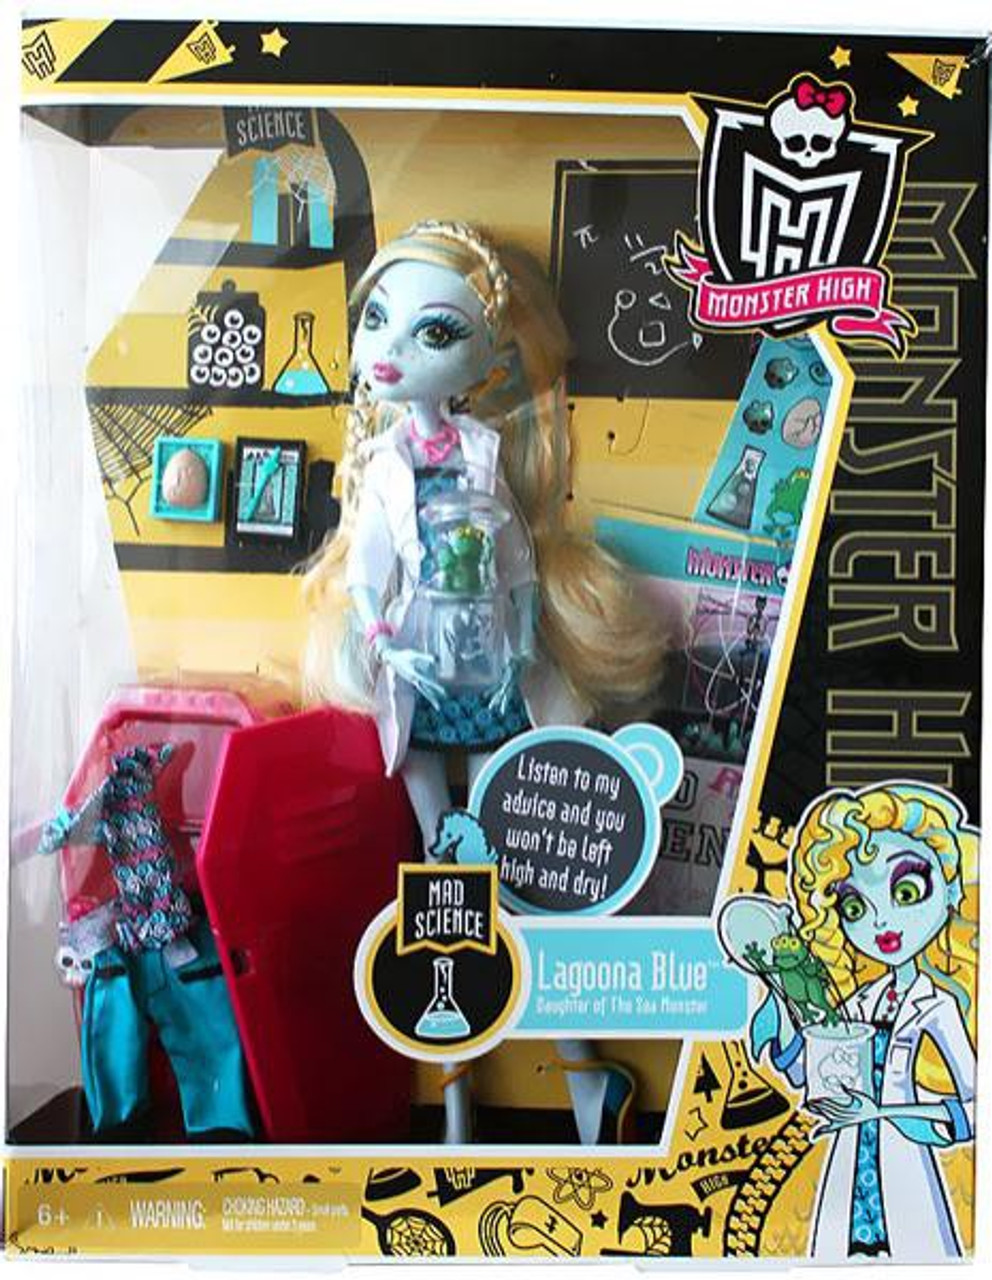 352e2e938c23 Monster High Classroom Mad Science Lagoona Blue 10.5 Doll With Locker  Mattel Toys - ToyWiz